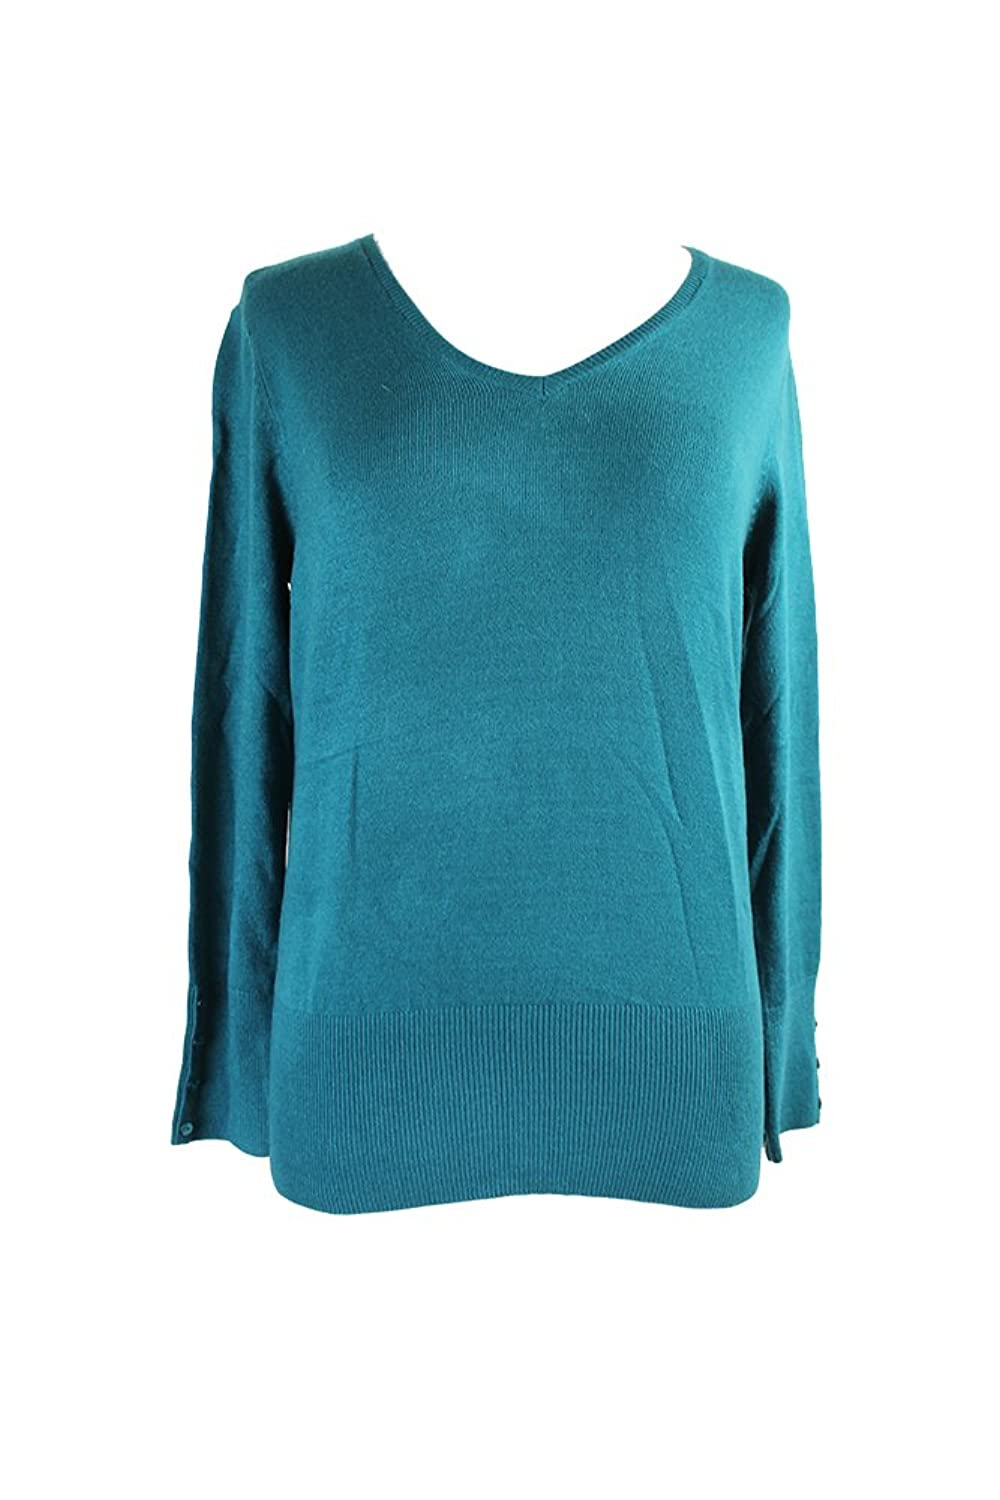 Jm Collection Teal Cozy V-Neck Sweater S